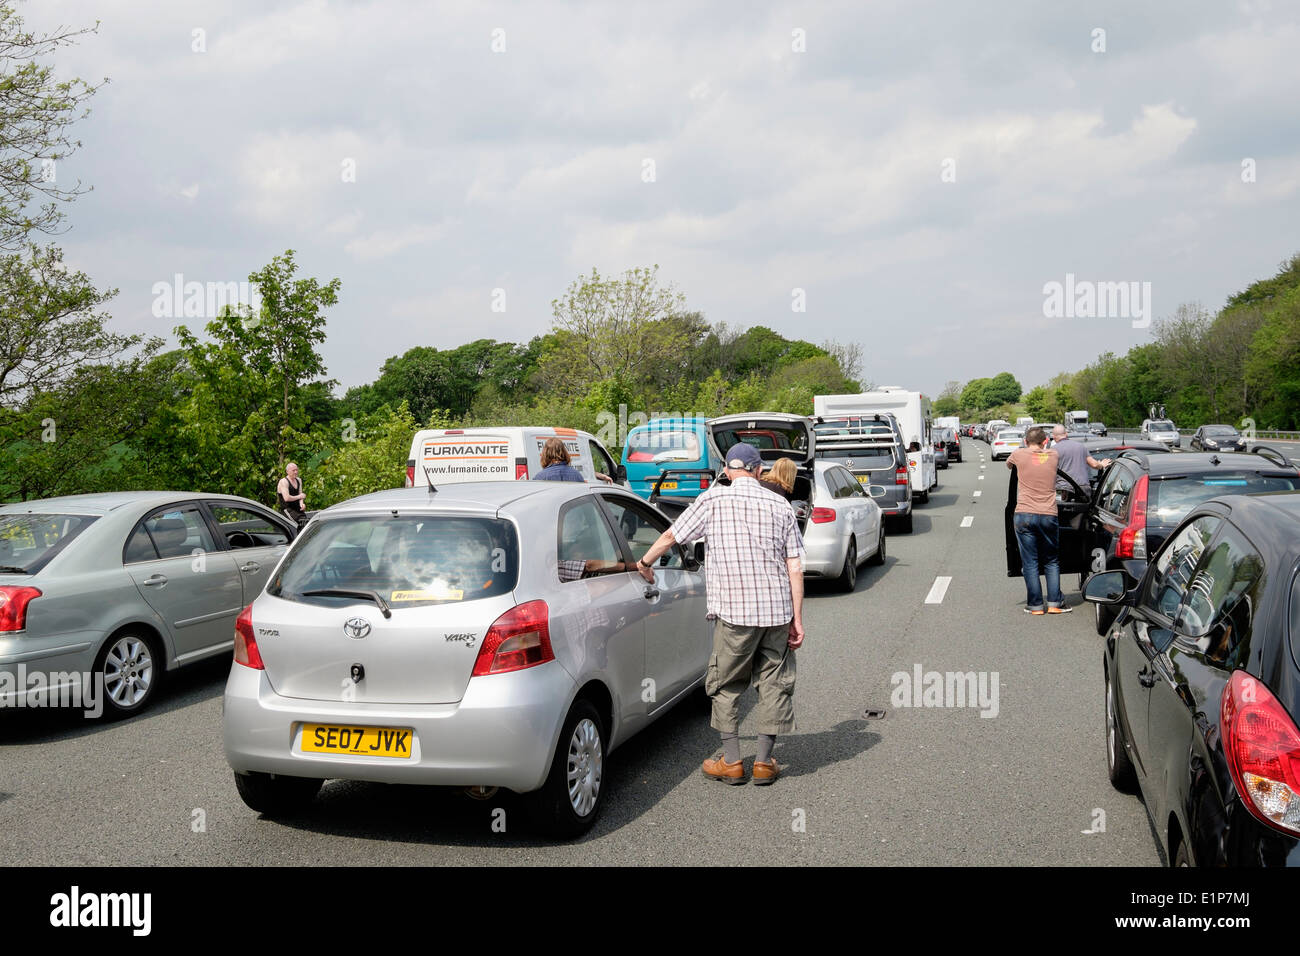 People standing on carriageway outside stationary vehicles in a traffic jam of cars on M6 due to accident causing Stock Photo